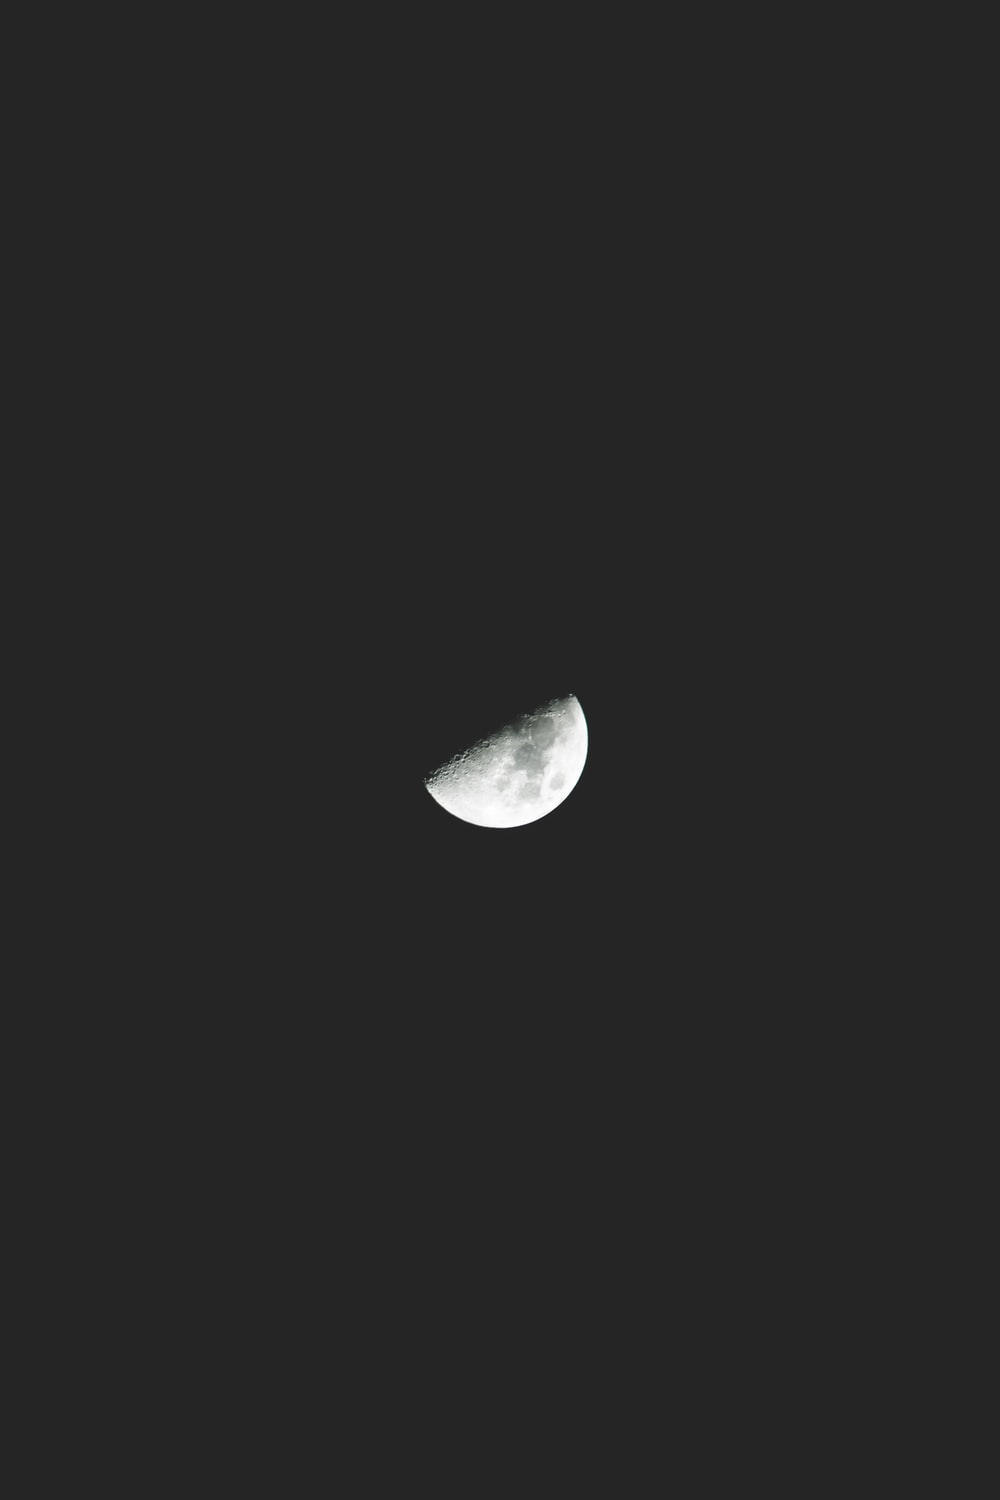 half moon against black background